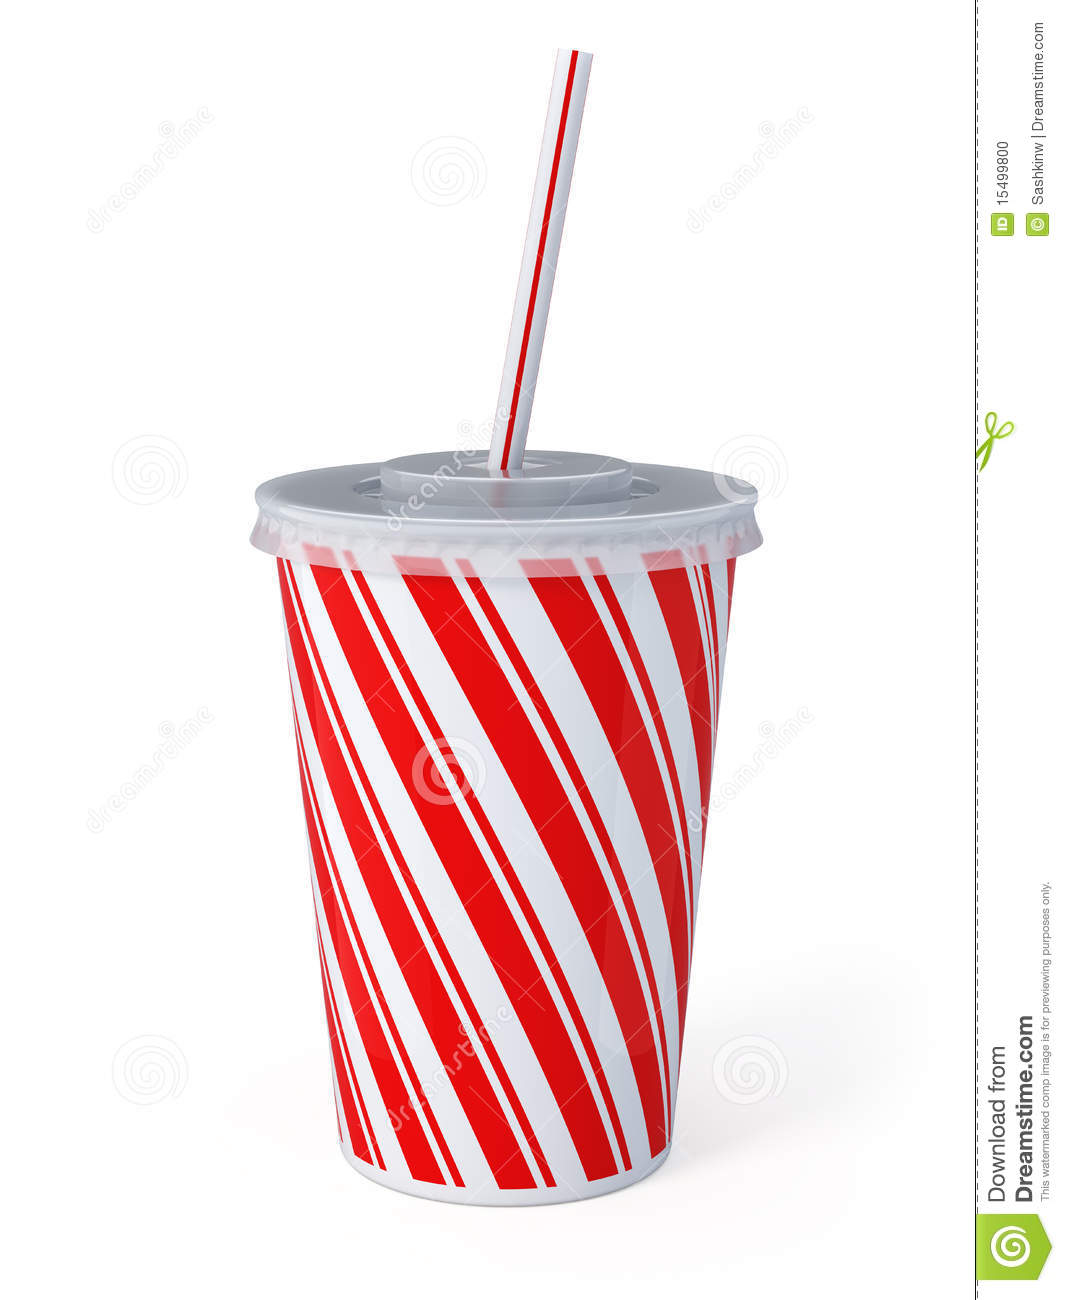 Soda Cup Clipart - Clipart Suggest